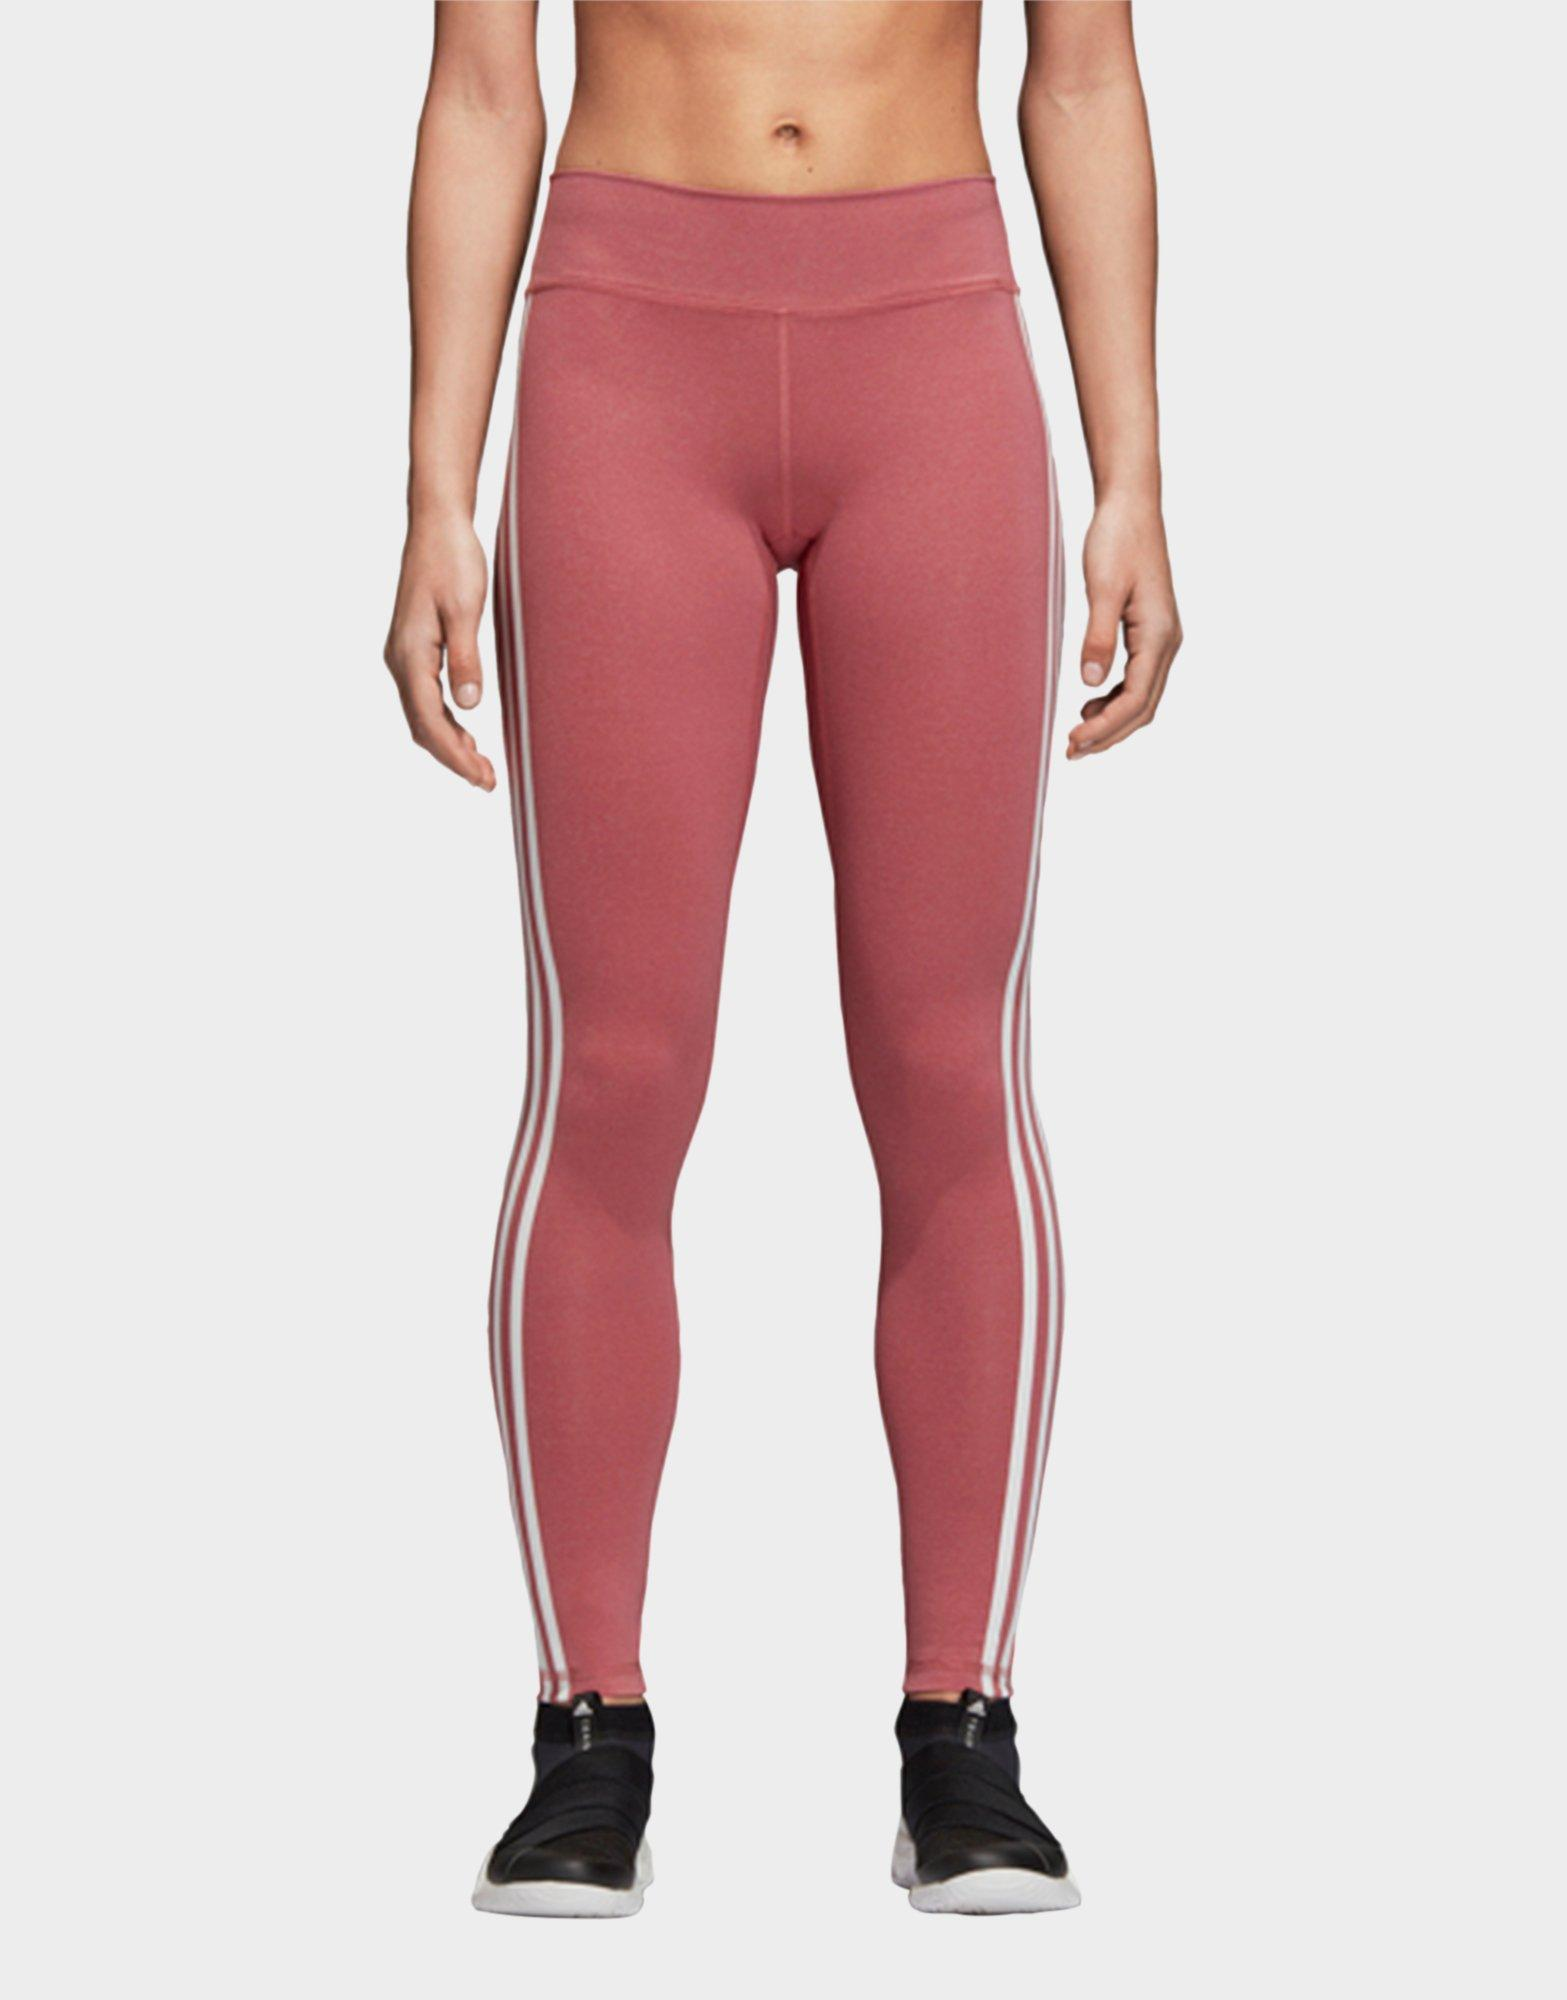 Lyst - Adidas Believe This 3-stripes Tights in Red 1d9ee032d40